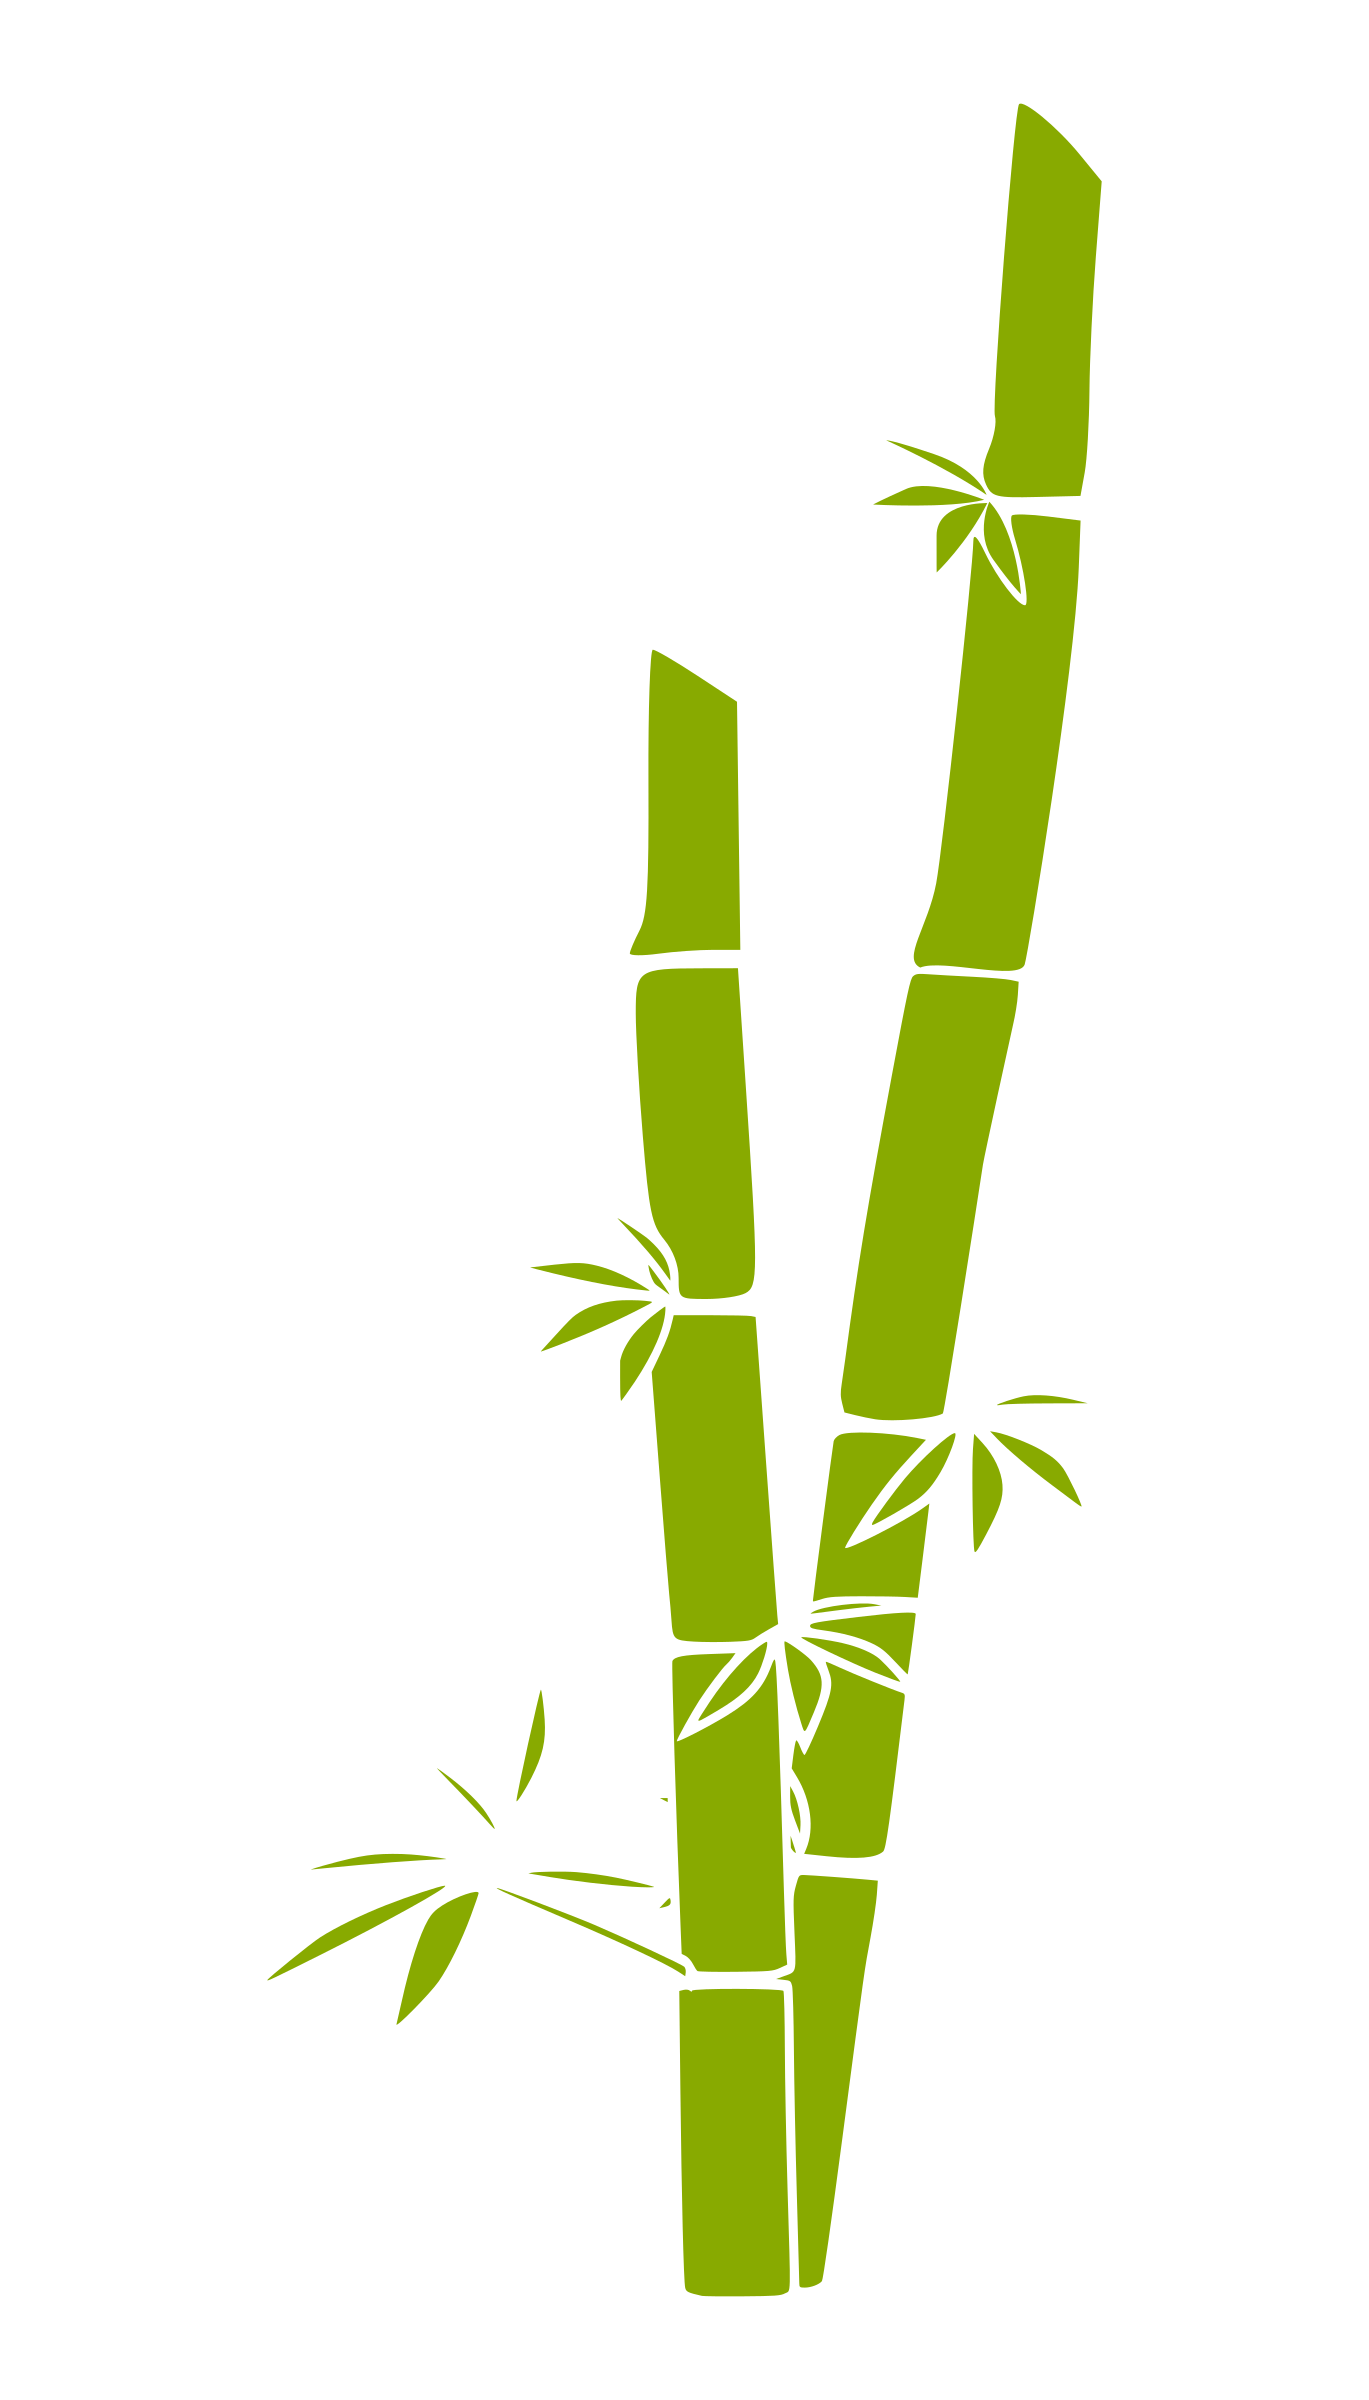 png library library Big image png. Bamboo clipart.